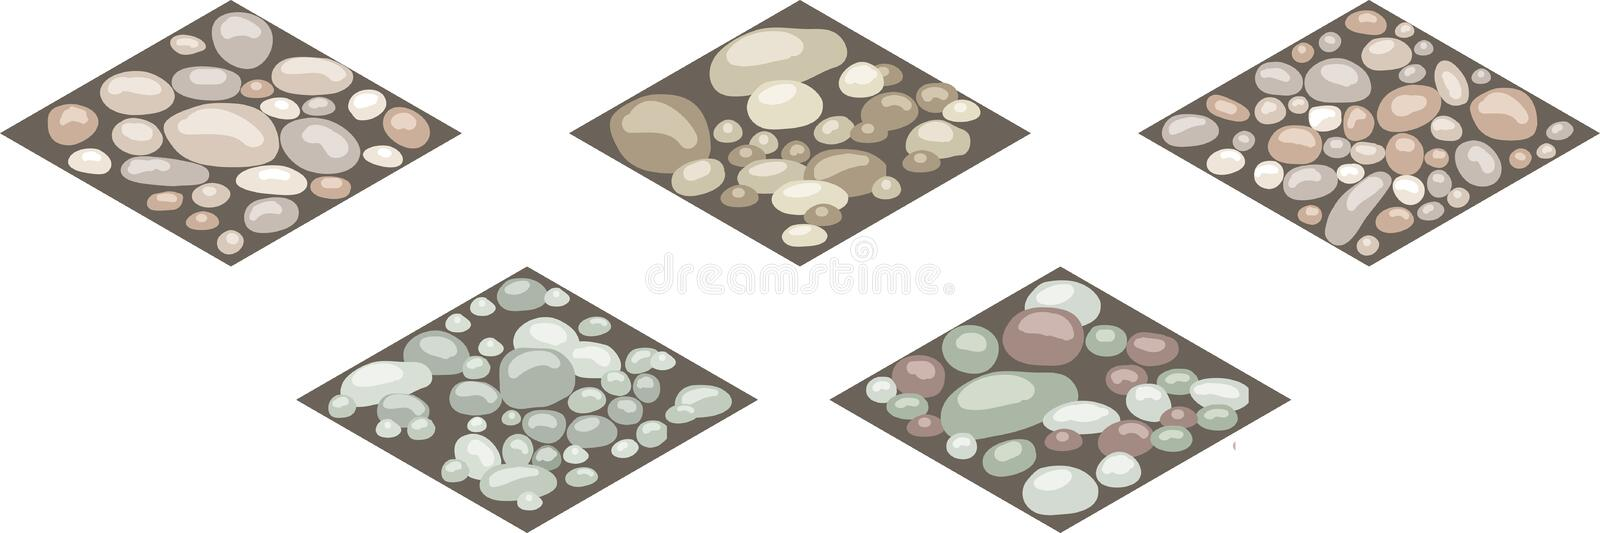 Isometric stone texture tiles. Set of stones, rocks, cobble,shingle on ground for design landscape scenes or background. Can be used in game asset, cartoon stock illustration